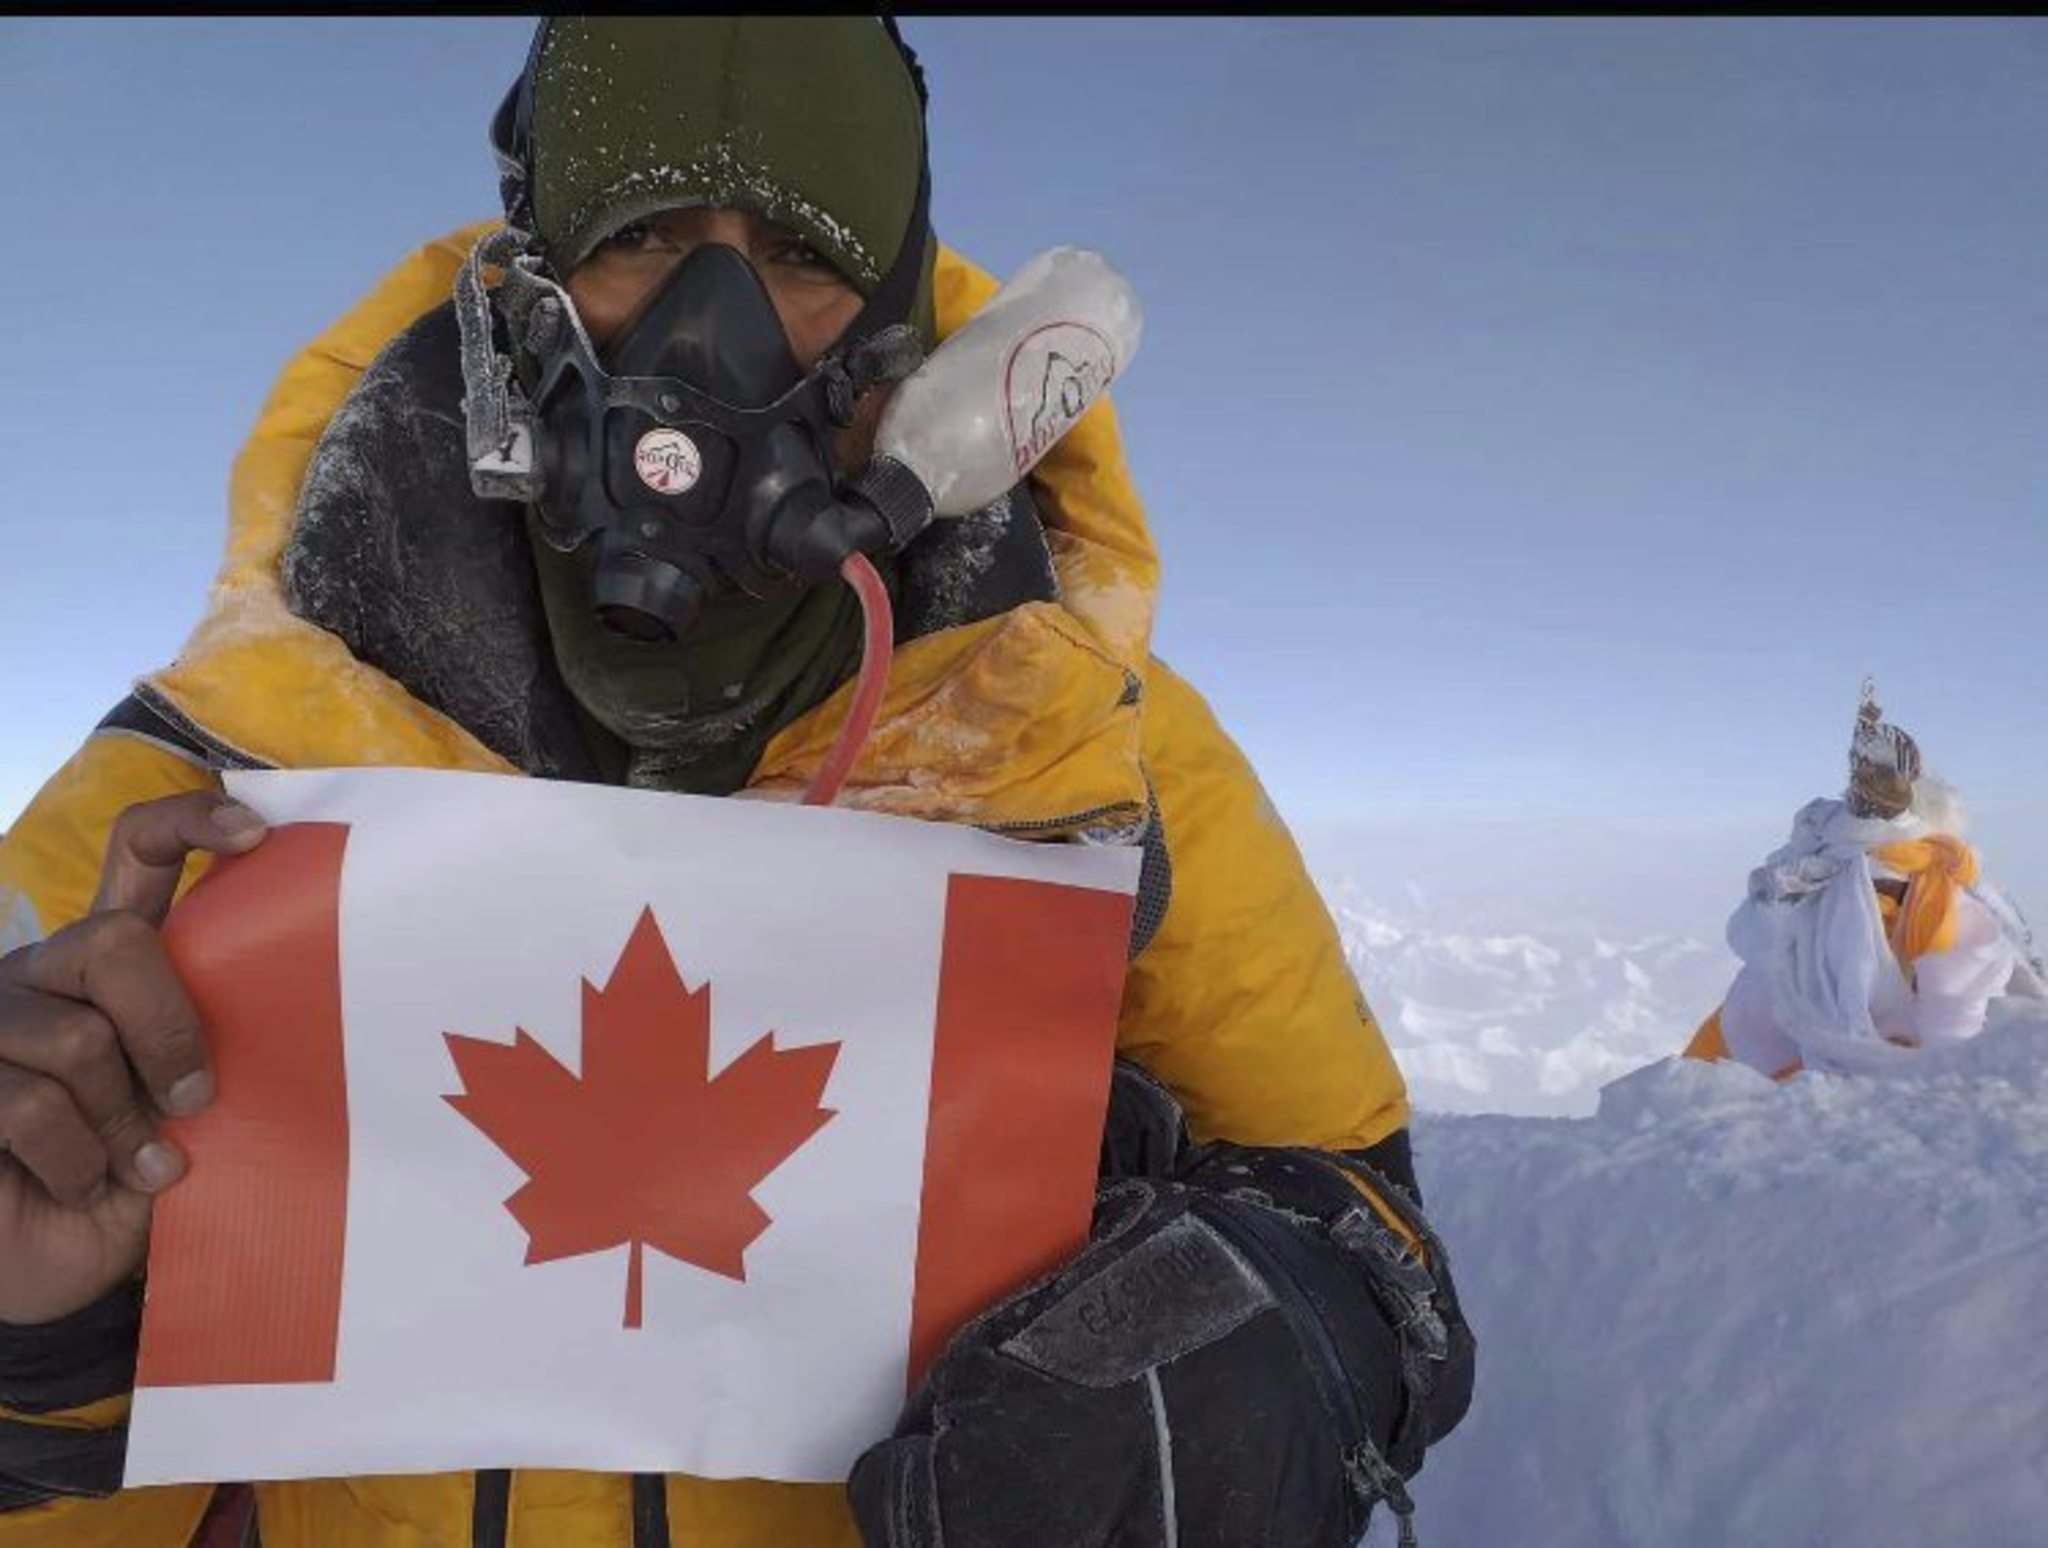 <p>Dalip Shekhawat at the summit of the world's highest mountain — Mount Everest